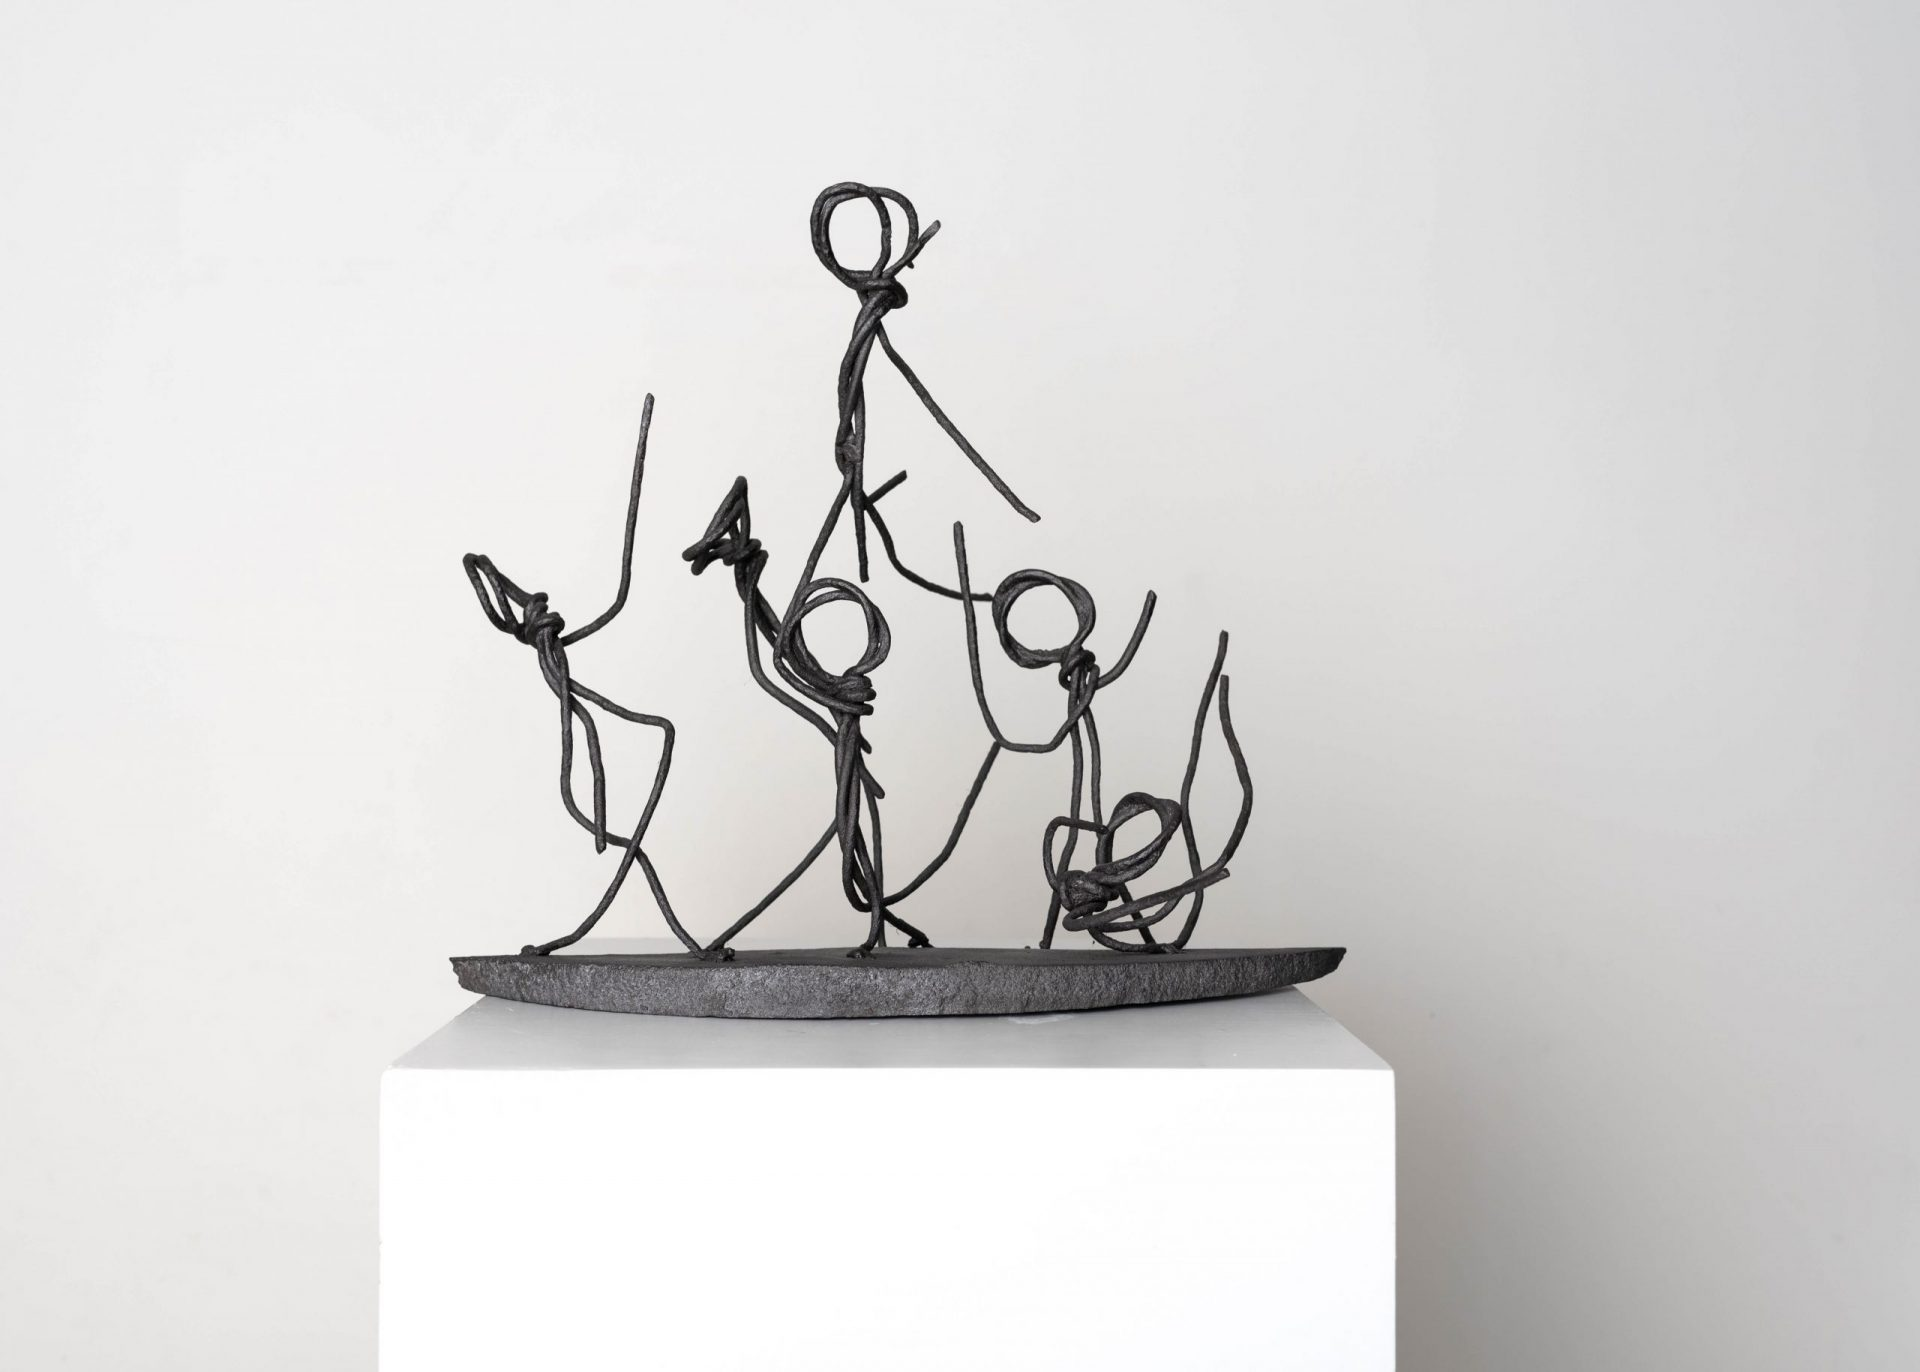 Dancing Freedom Sculpture